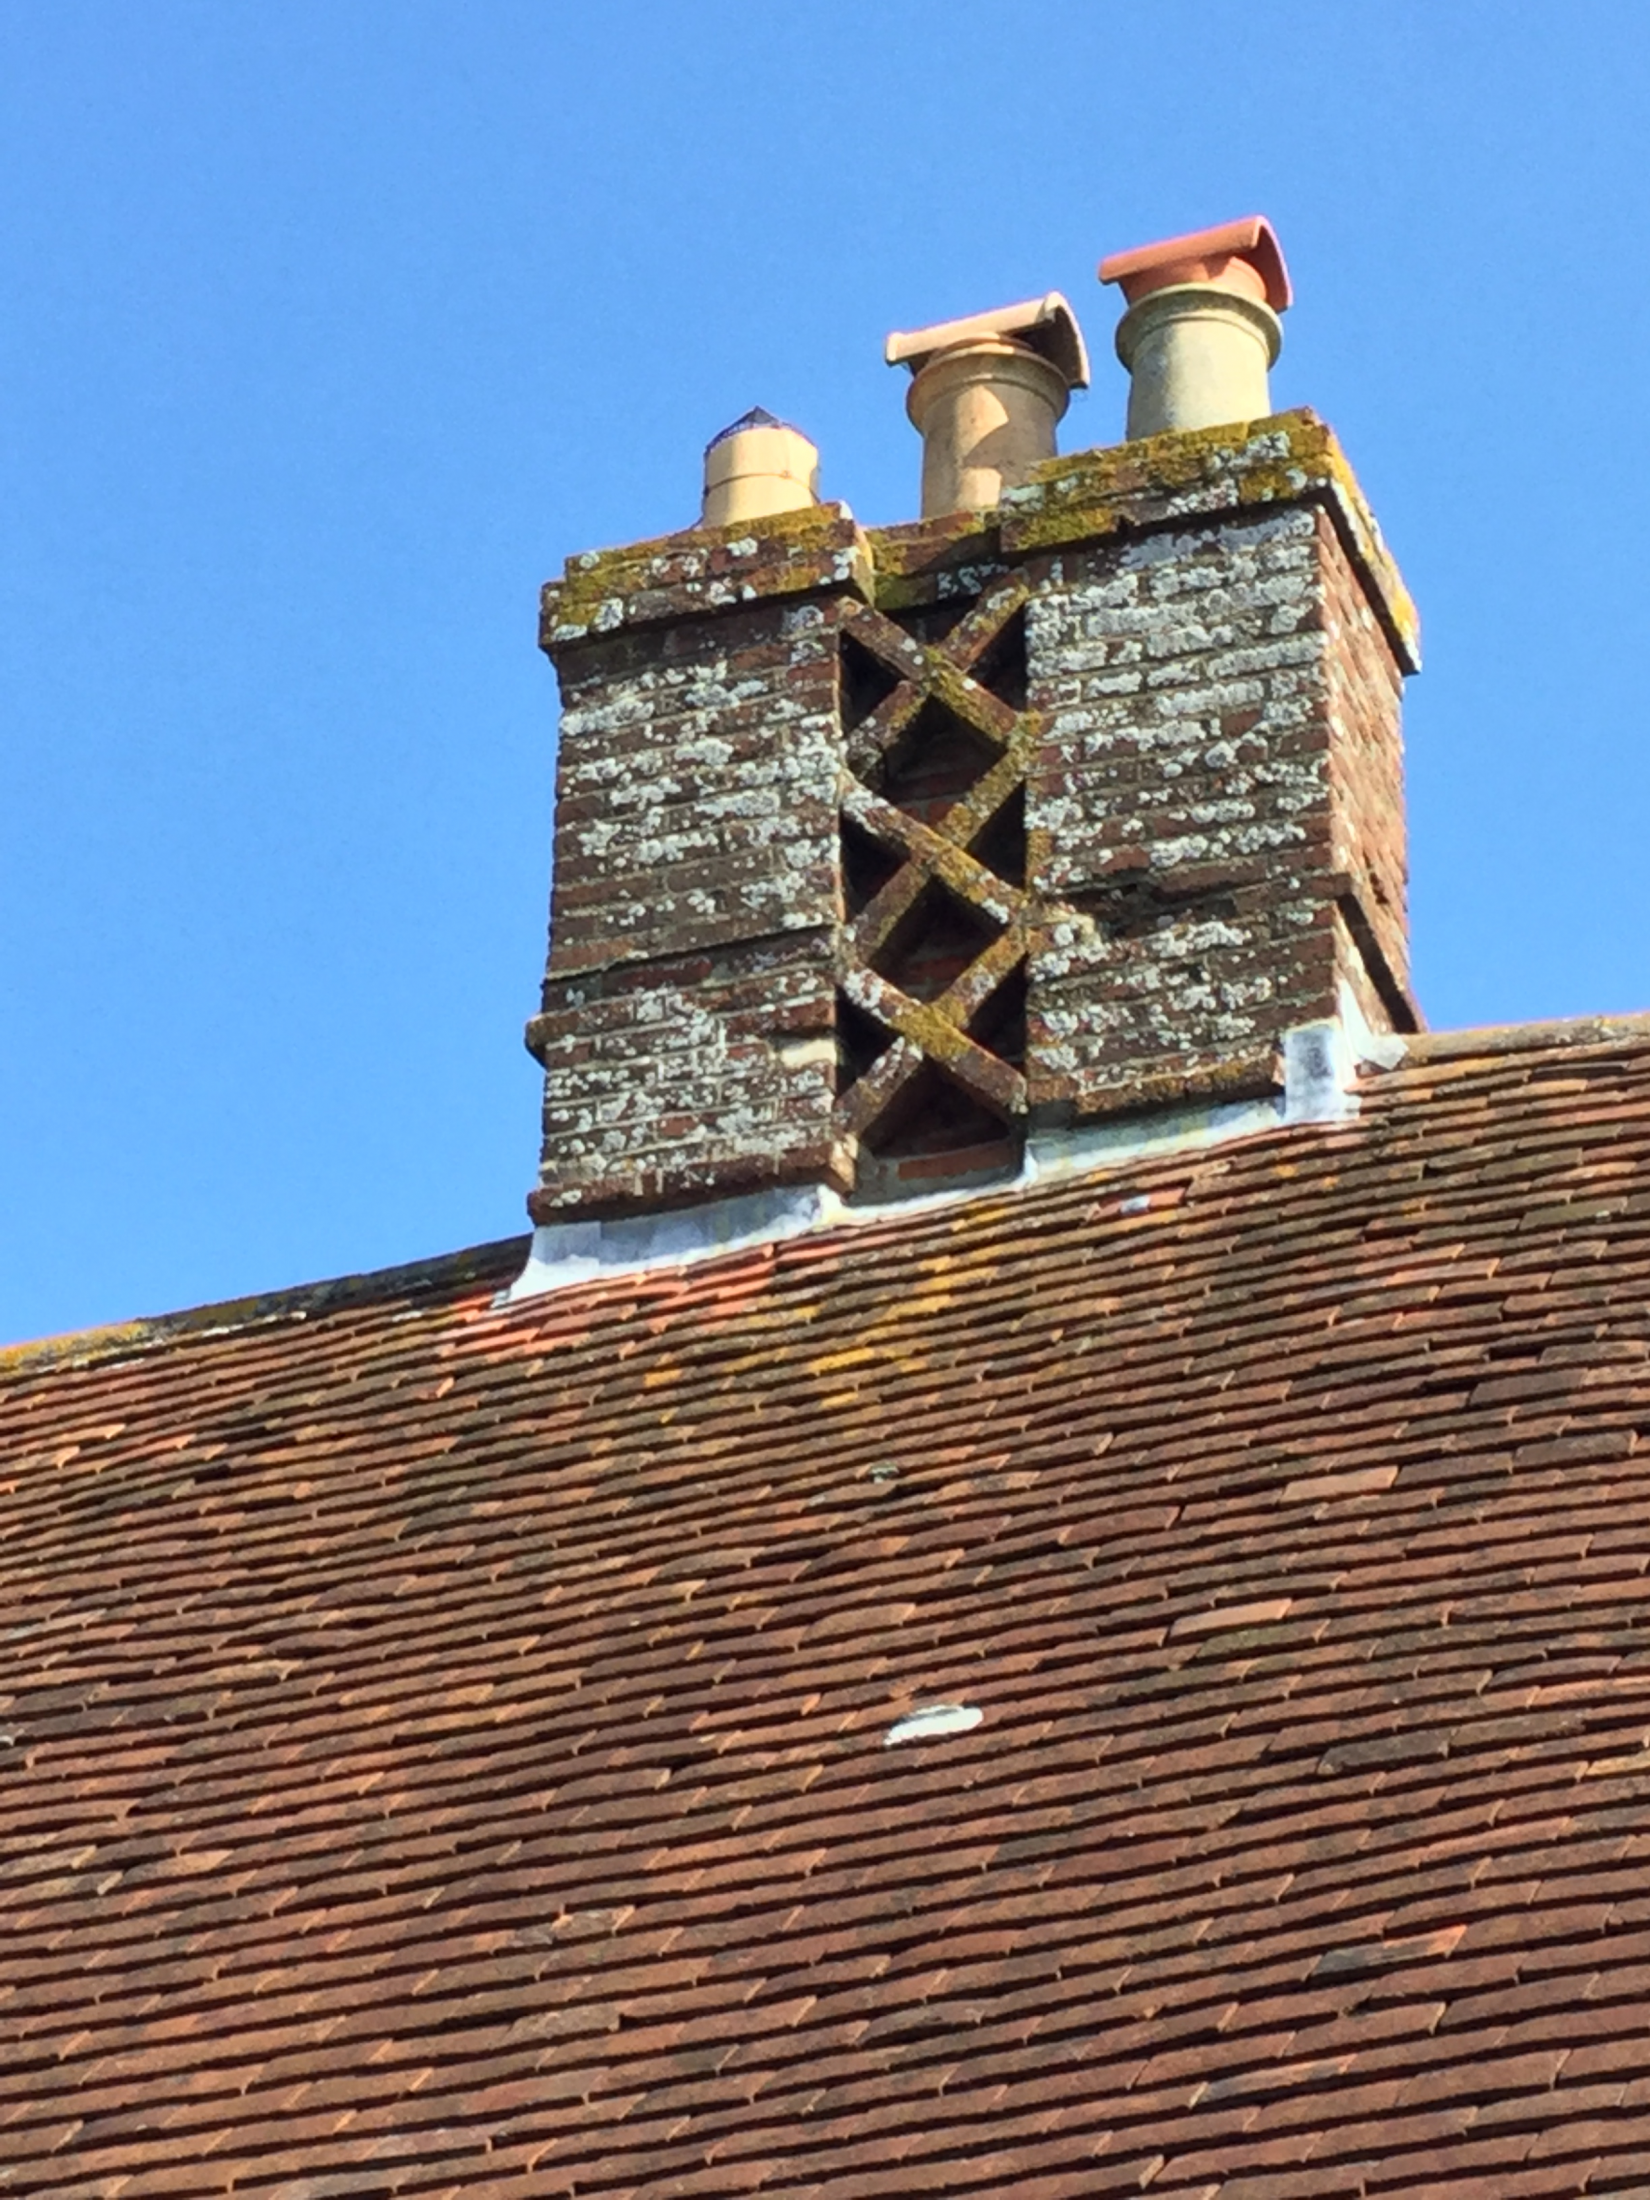 Decorative Chimneys